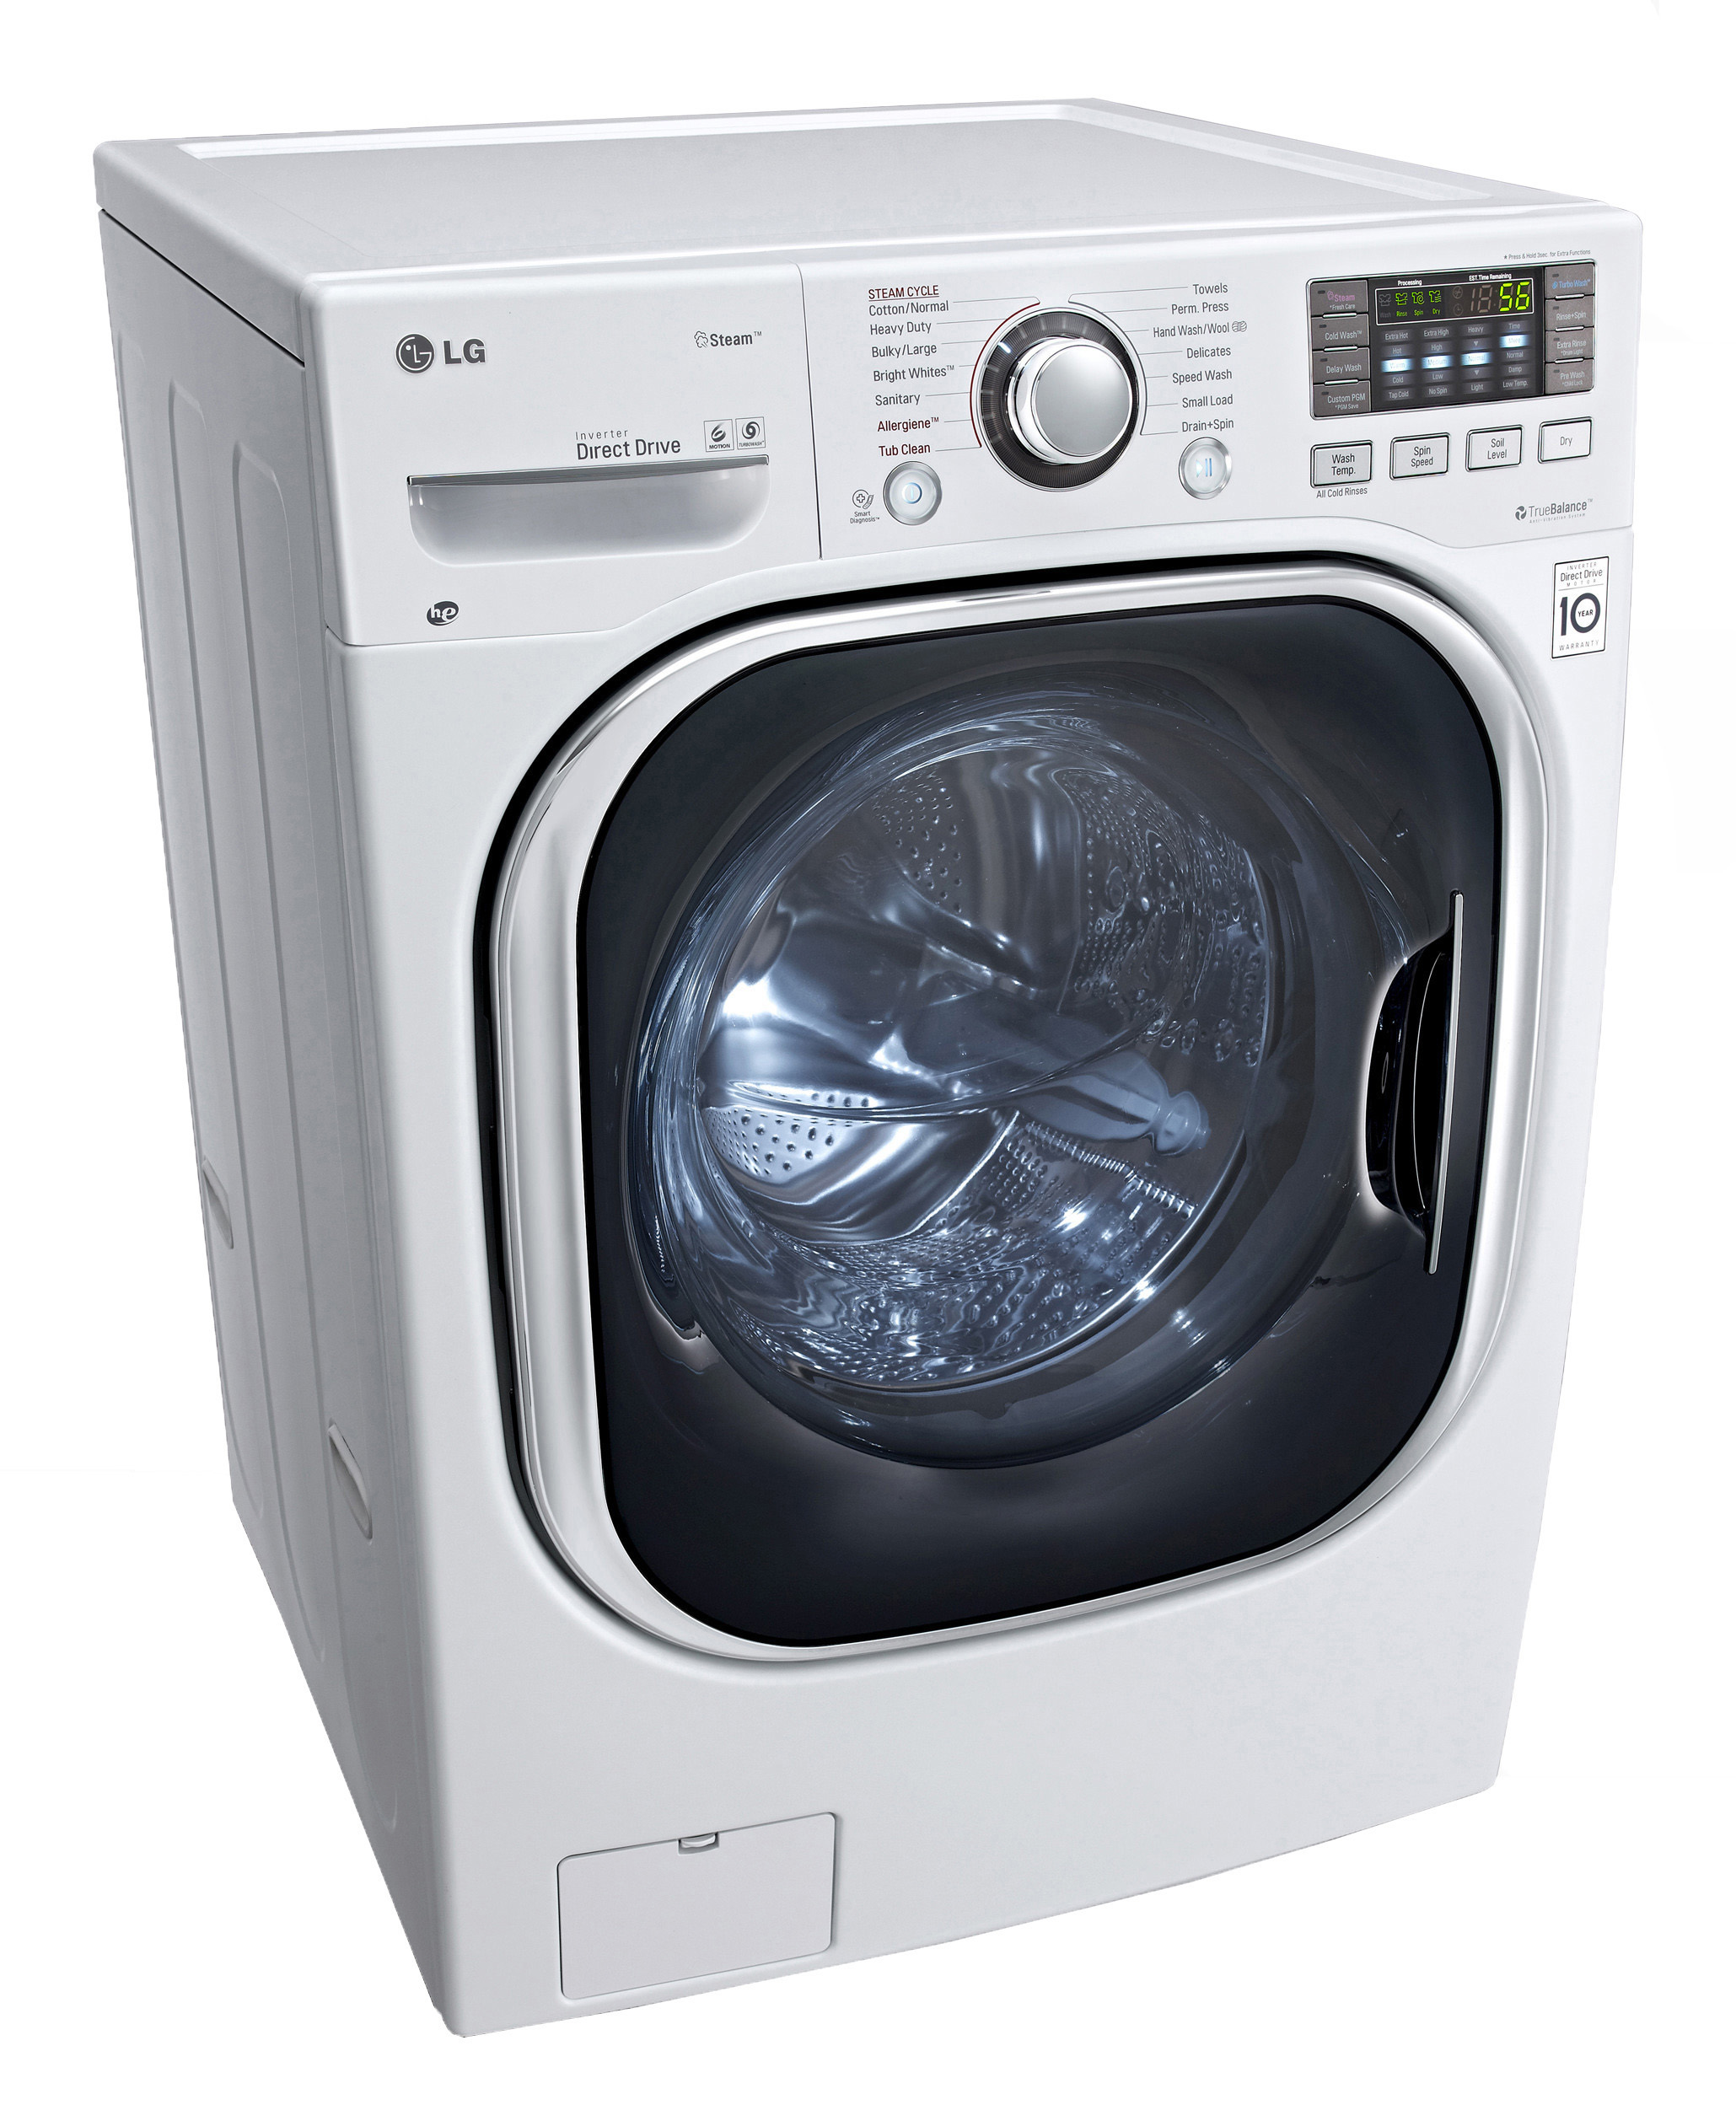 Lg all in one washer and dryer reviews - 732dc060df238f5ef573d70baa6baa7c_214136 732dc060df238f5ef573d70baa6baa7c_214179 732dc060df238f5ef573d70baa6baa7c_214180